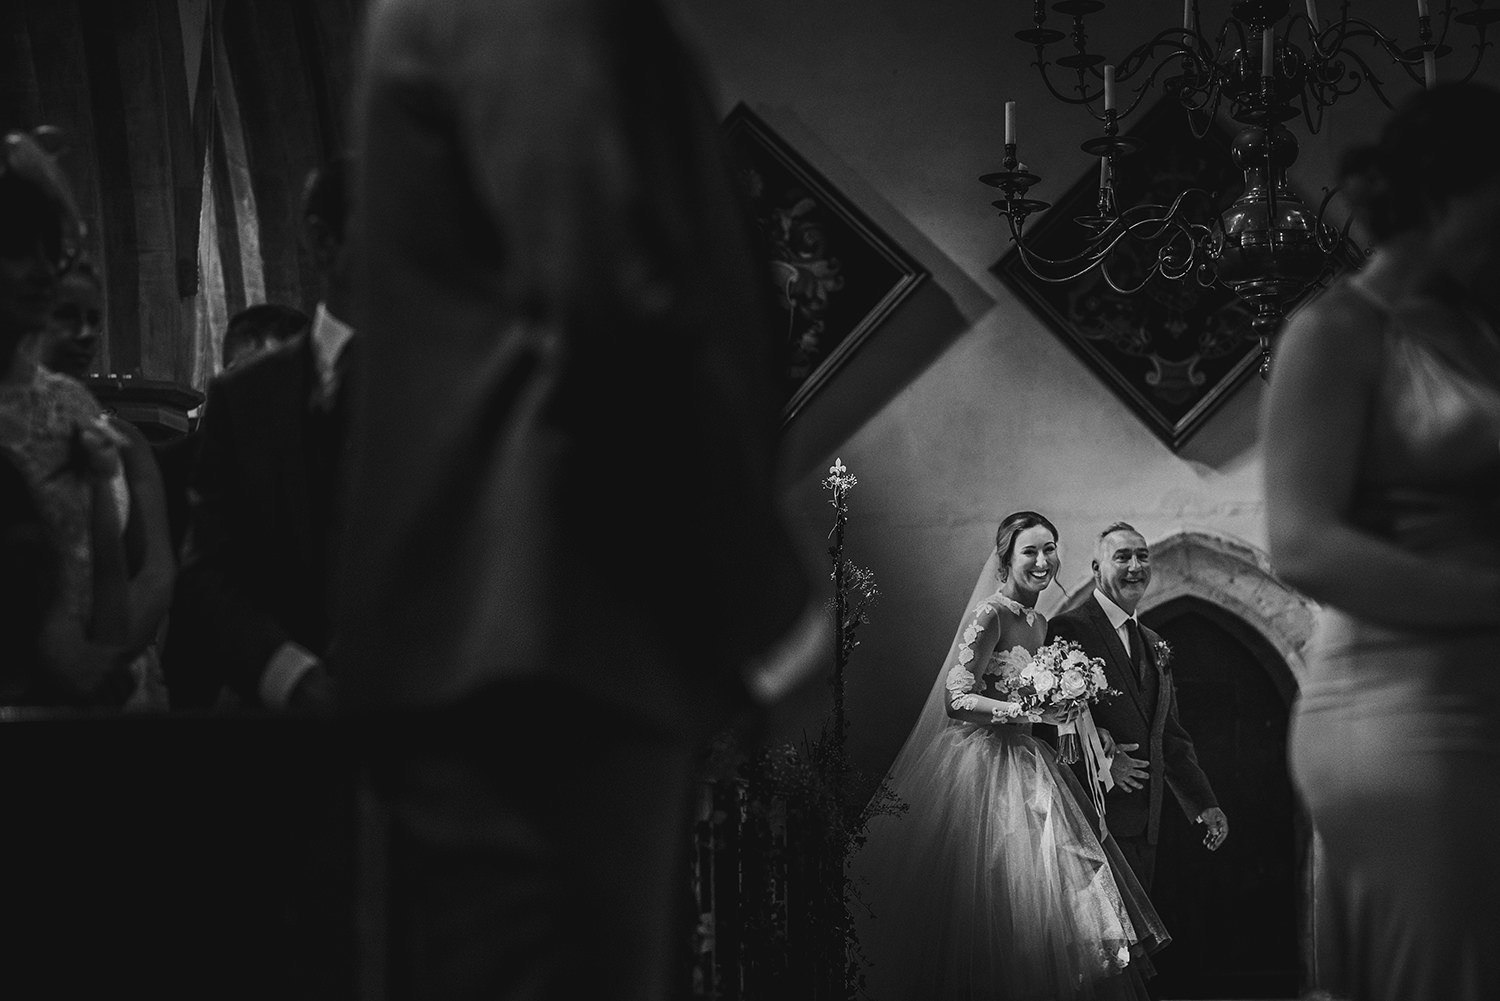 BW photo of the bride entering with her father